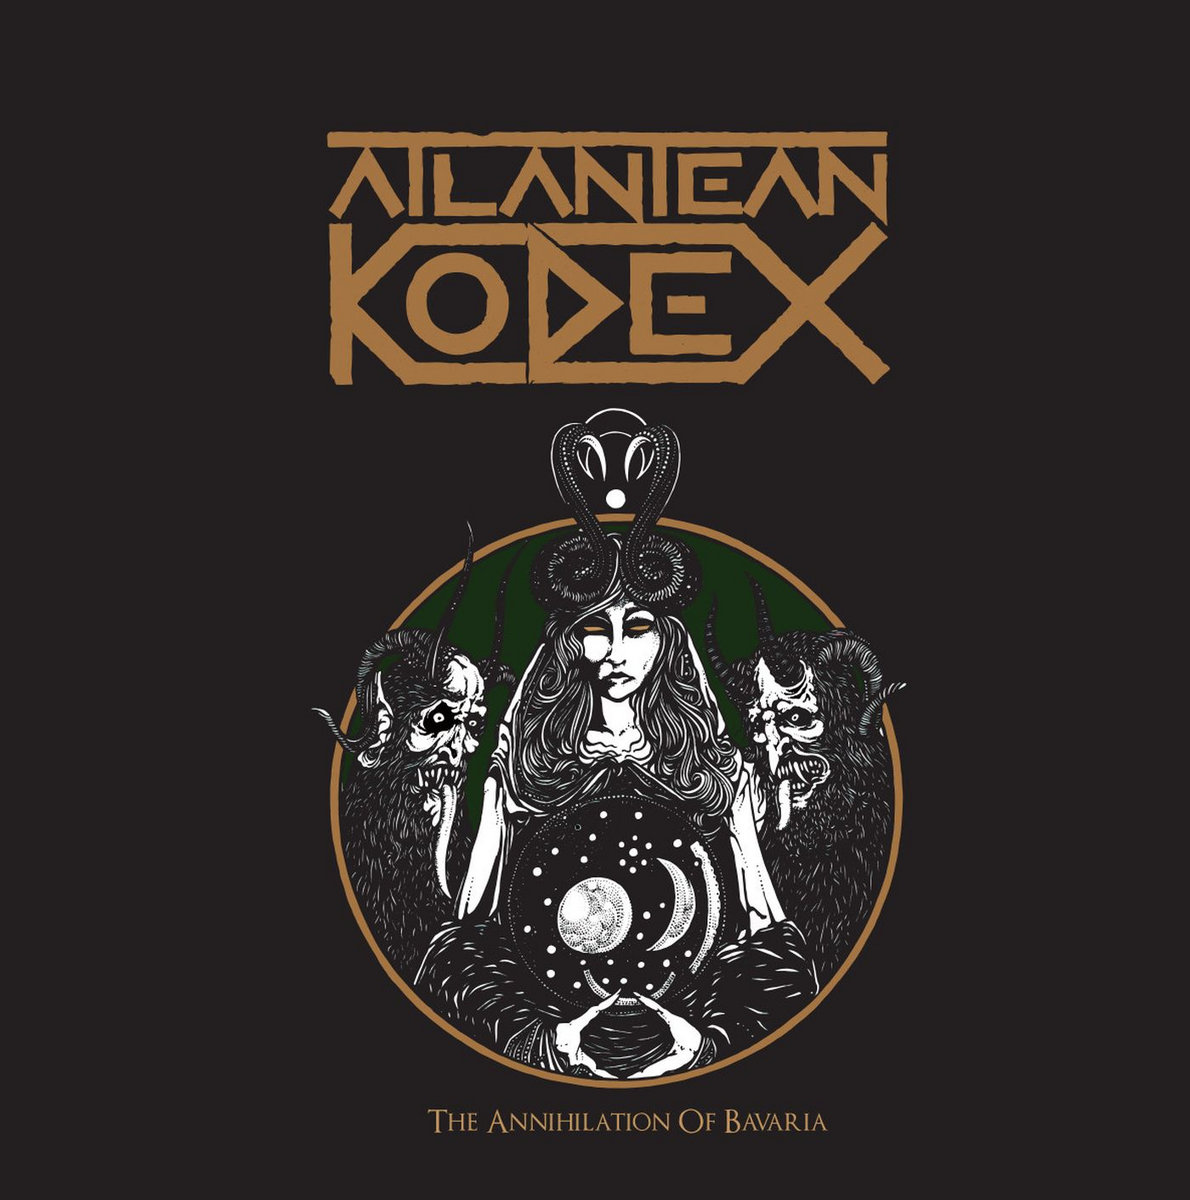 atlantean kodex the course of empire